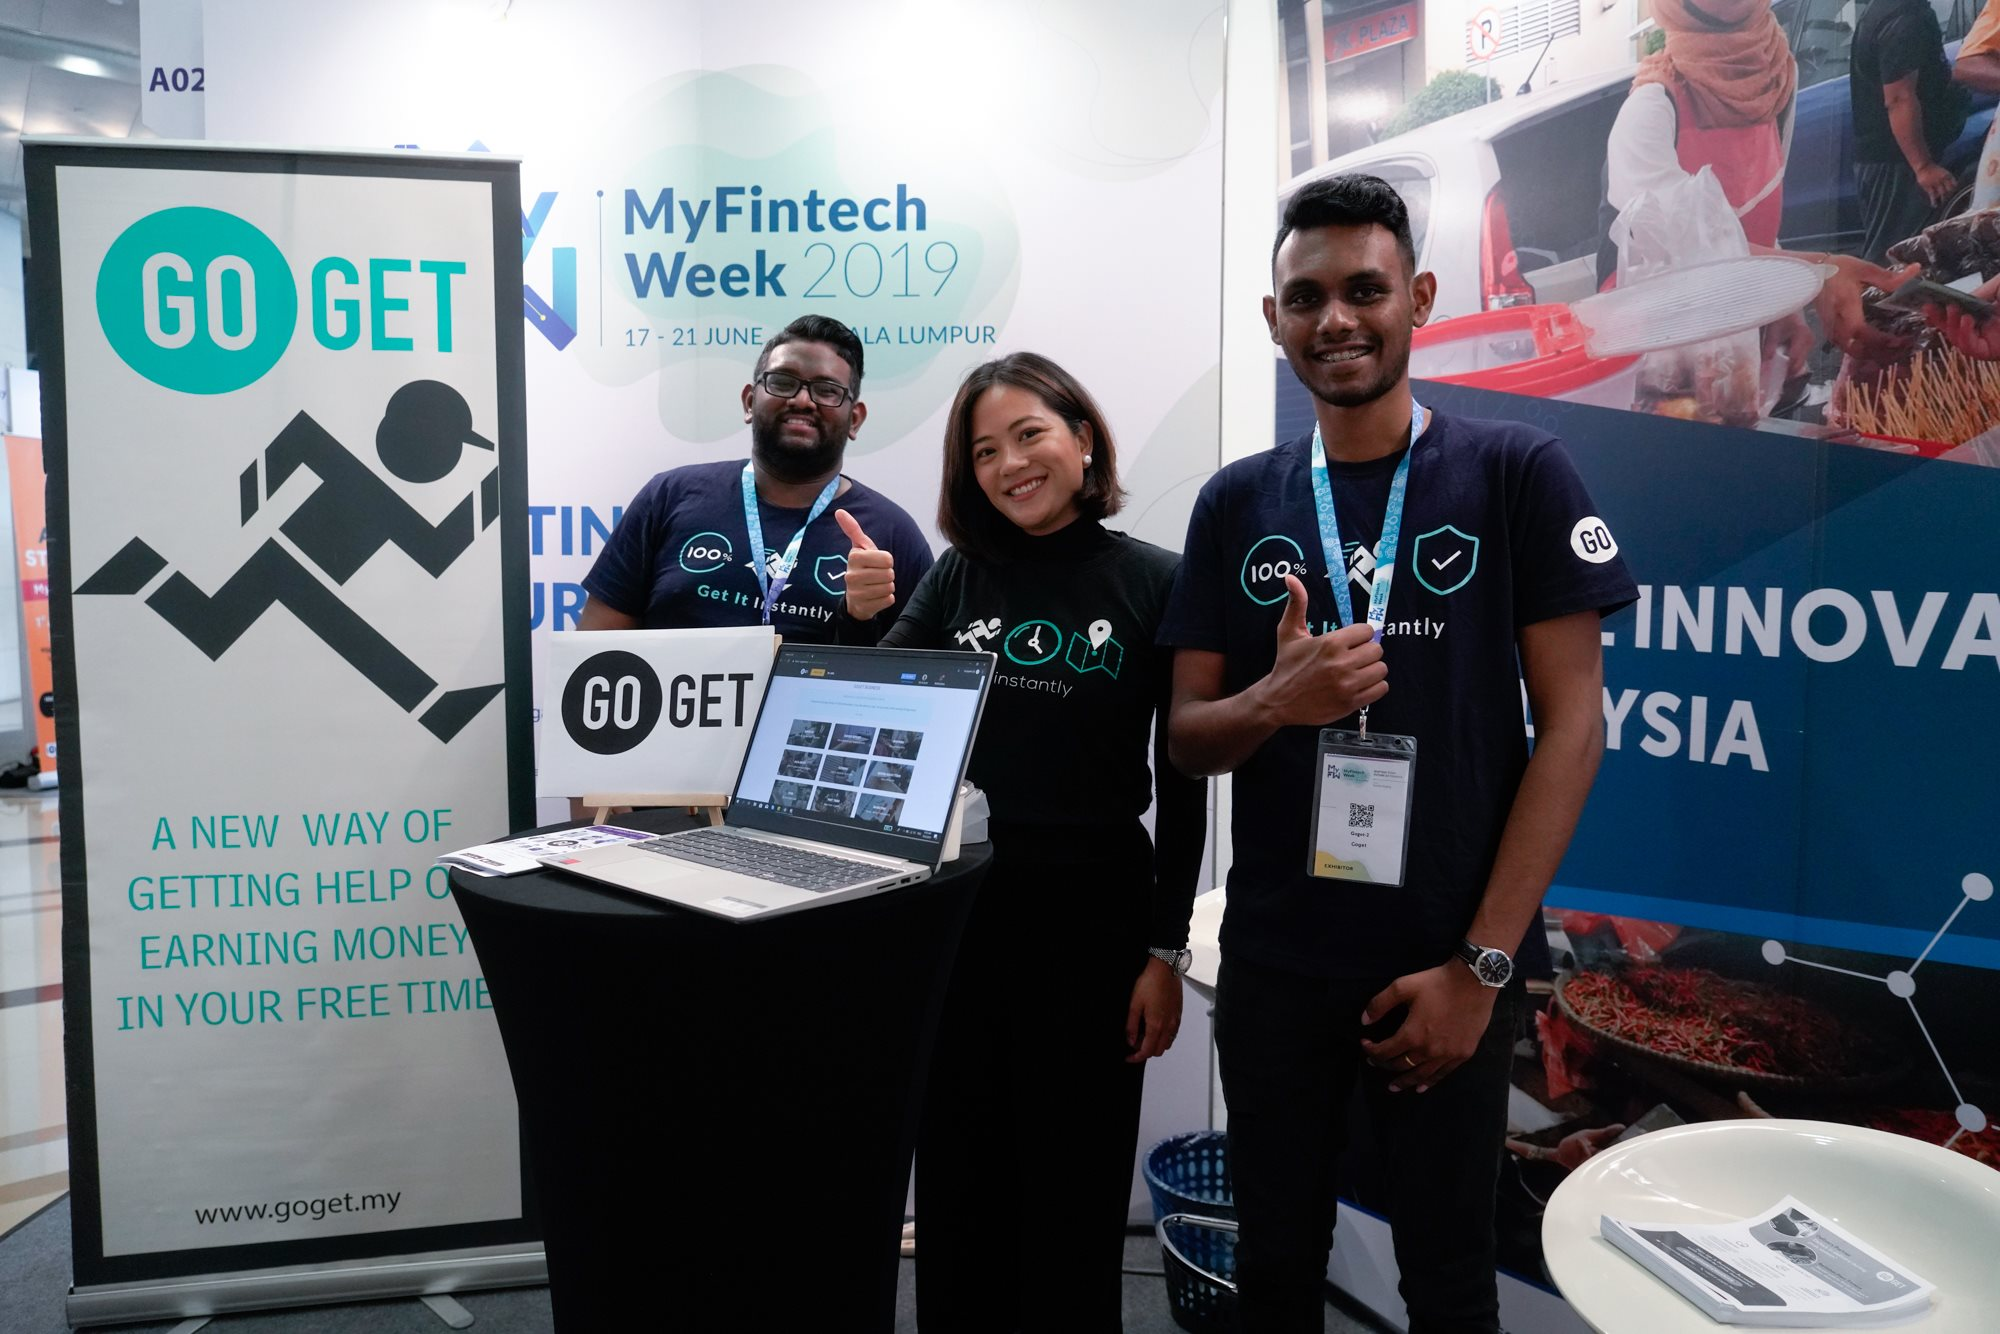 GoGet, a Start-up in Malaysia, shares its' B40 Challenge Experience